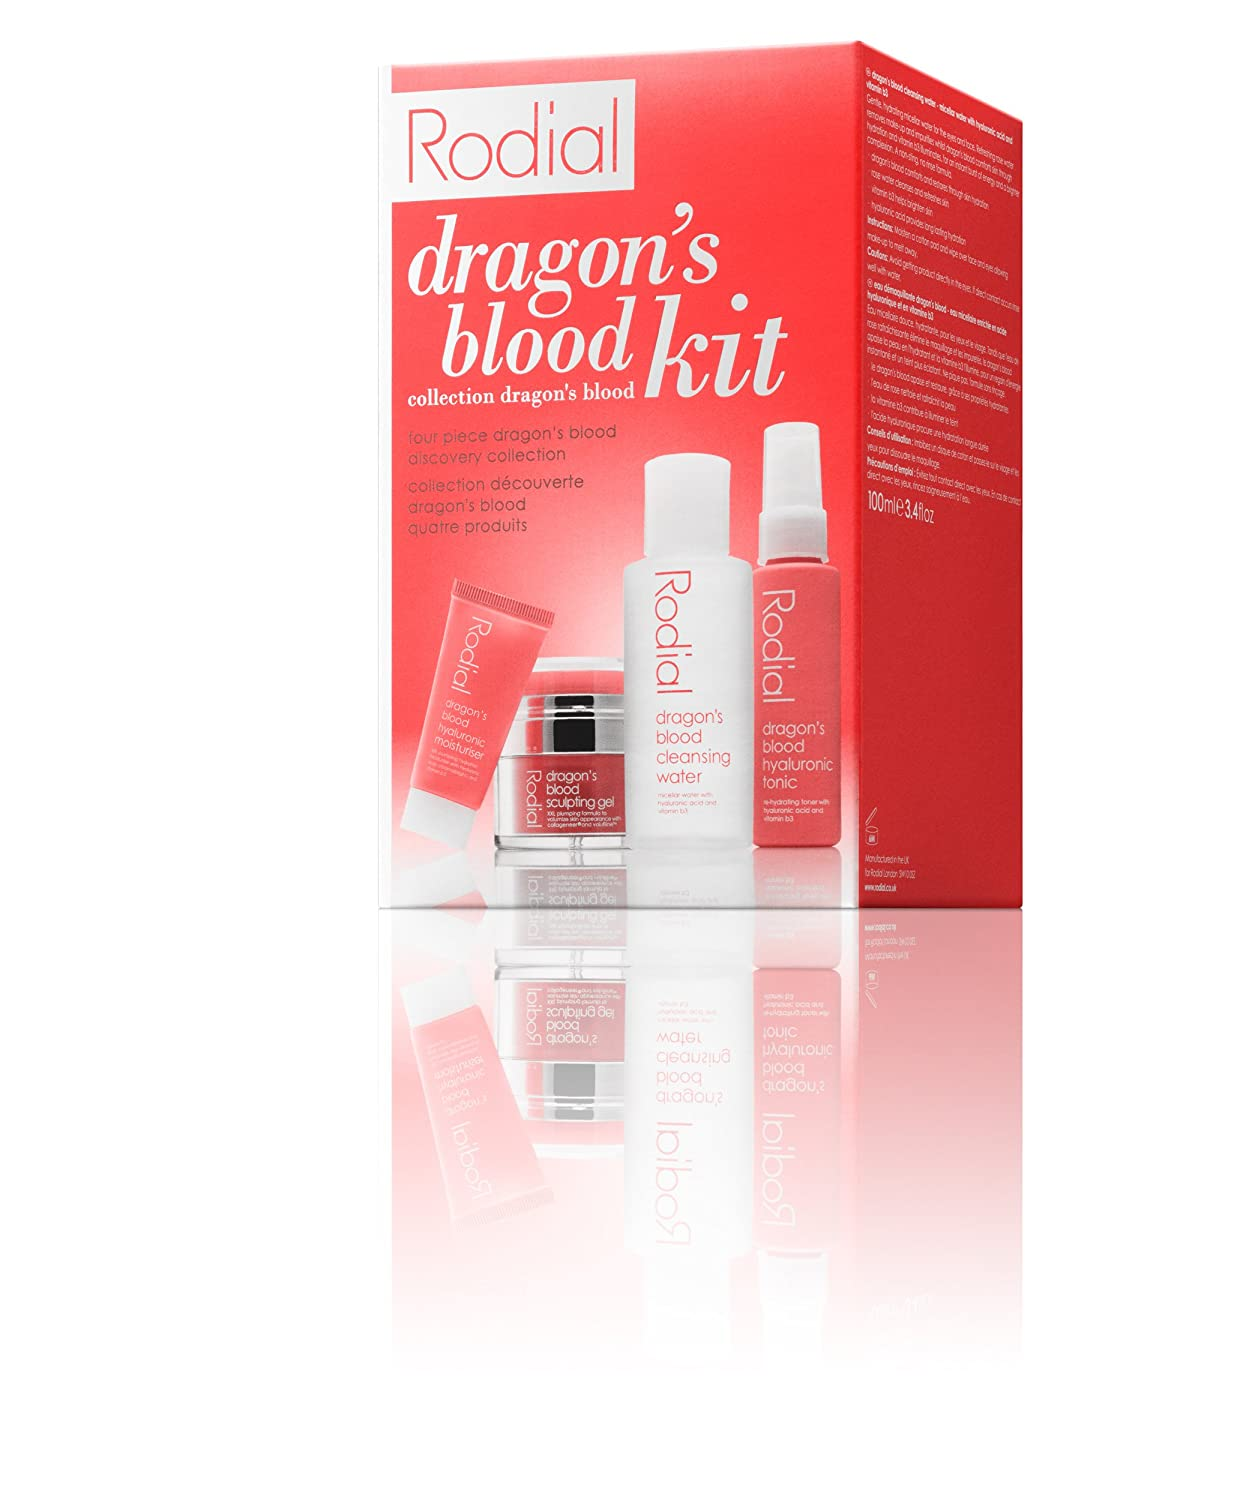 Rodial Dragon' s Blood Discovery Kit SKDRGBDISCKIT